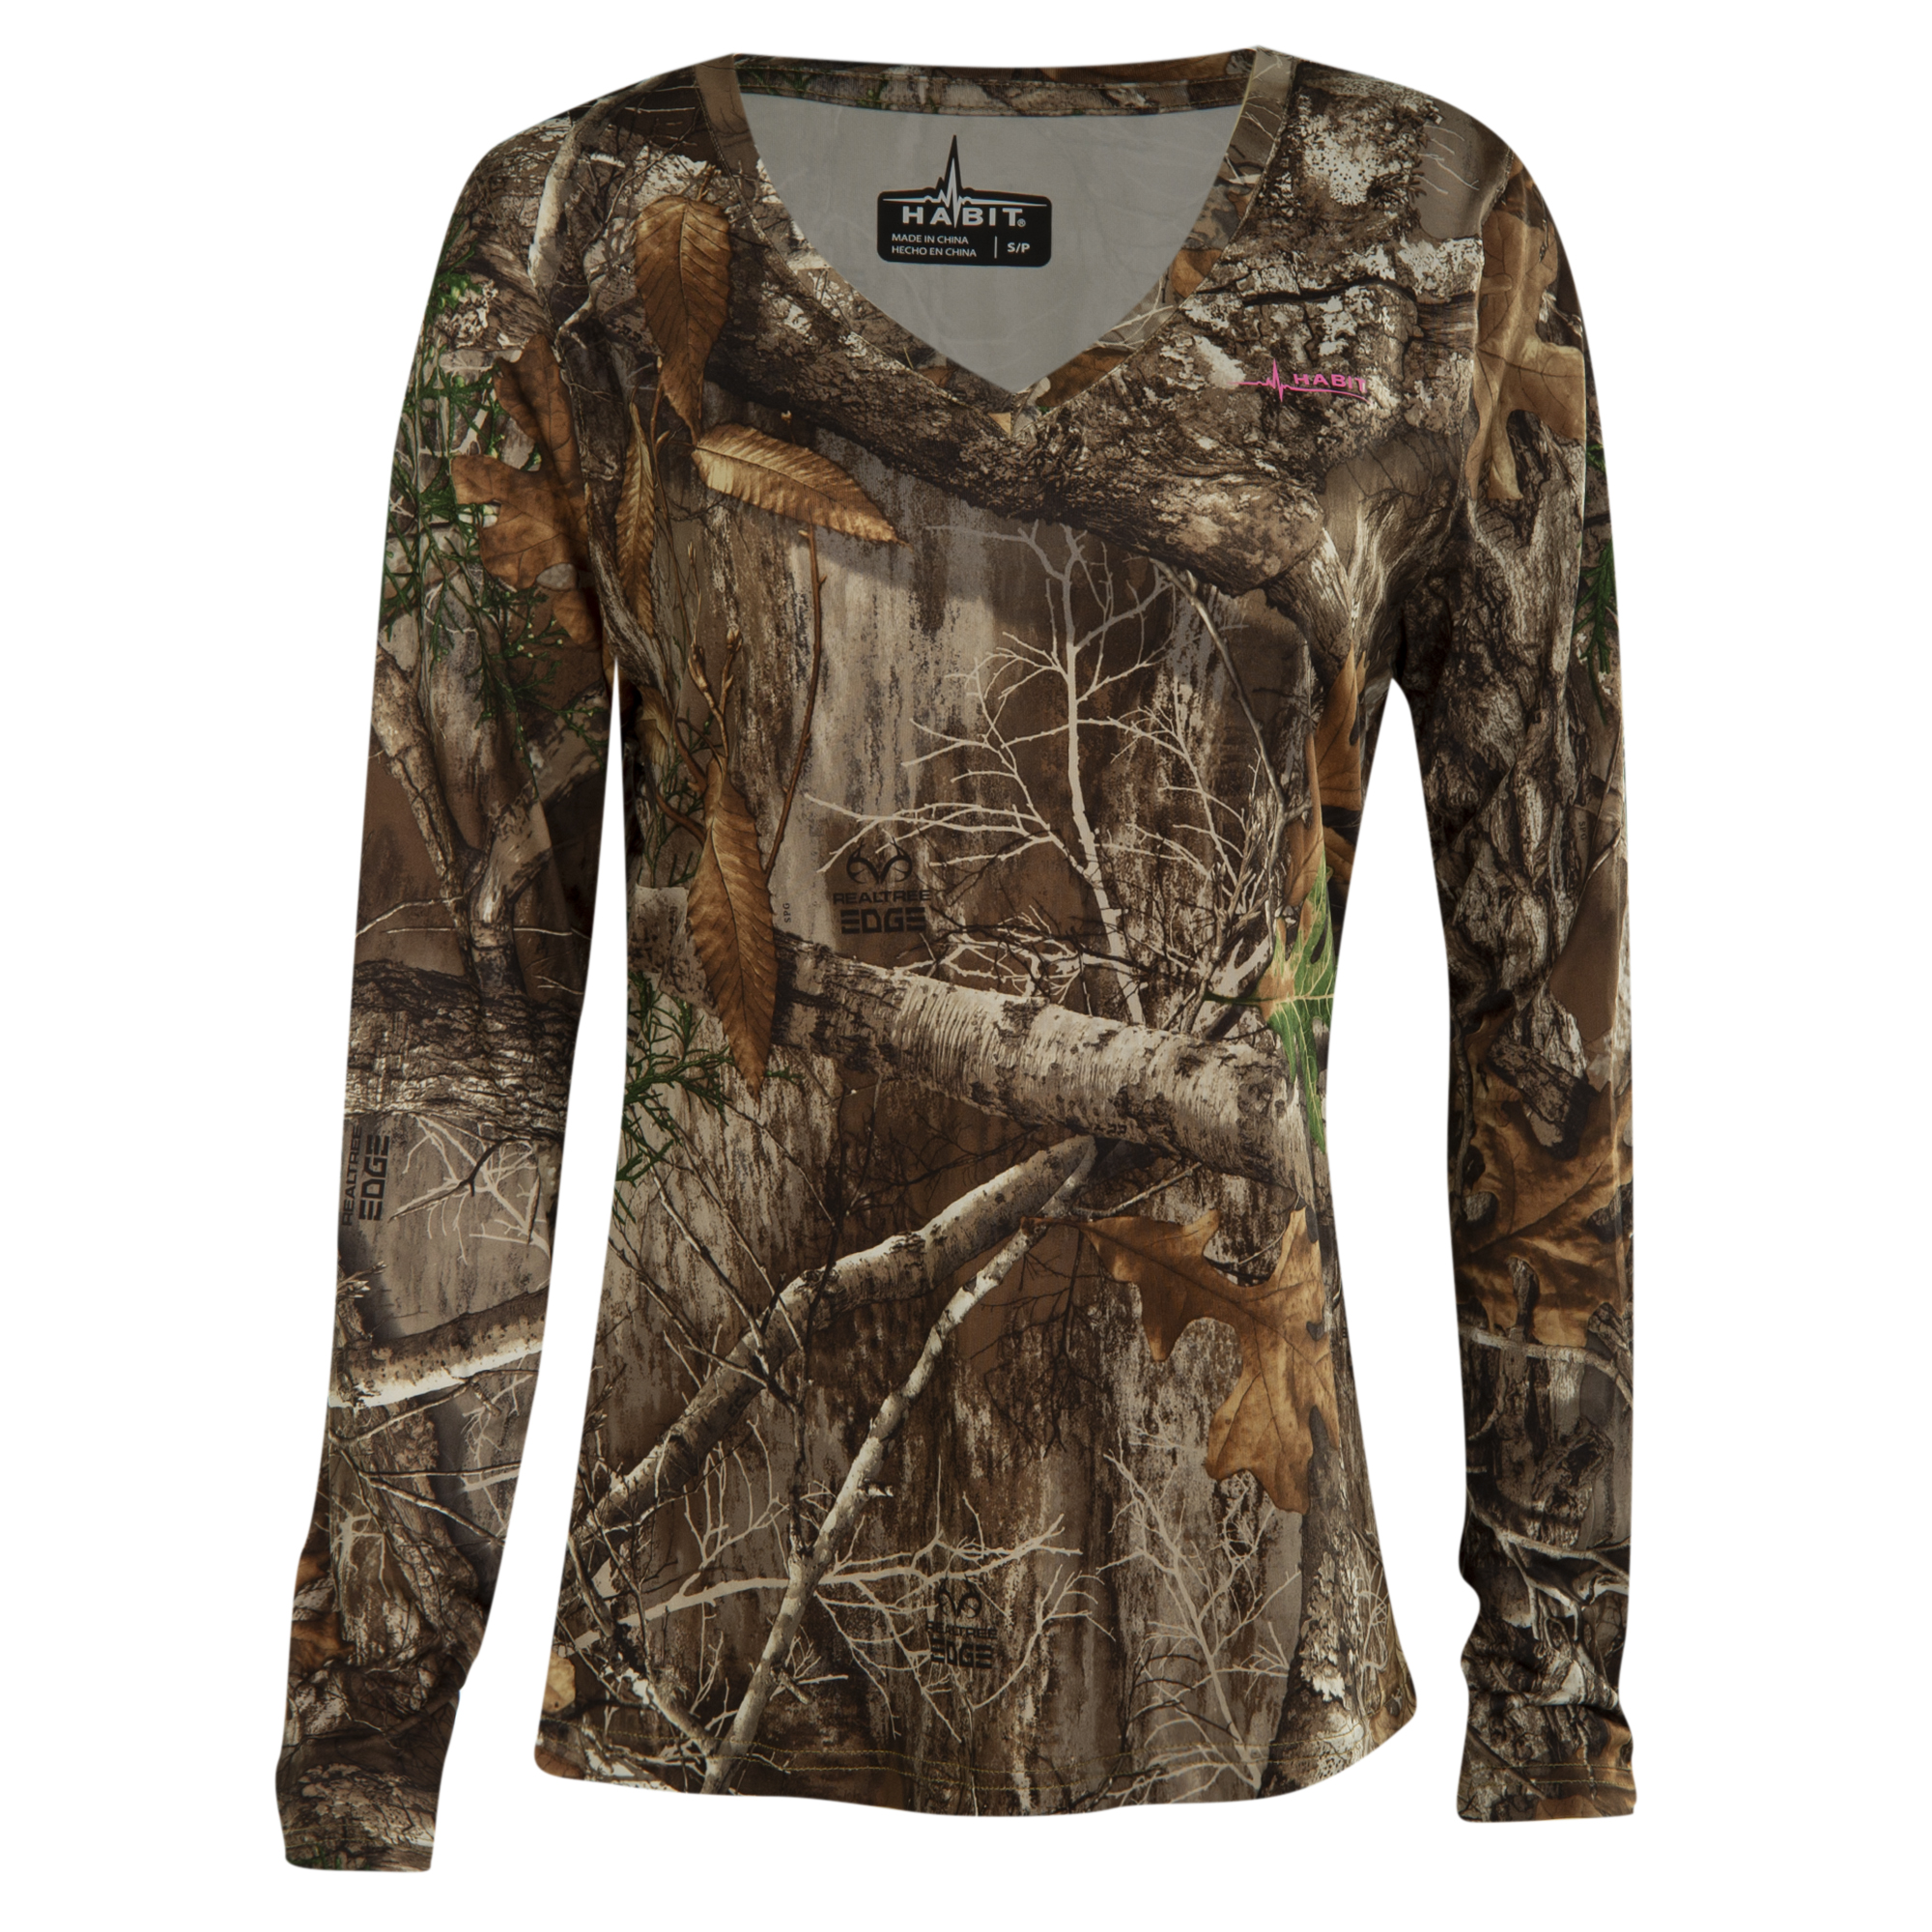 Habit Women's Camo Performance Long-Sleeve Tee